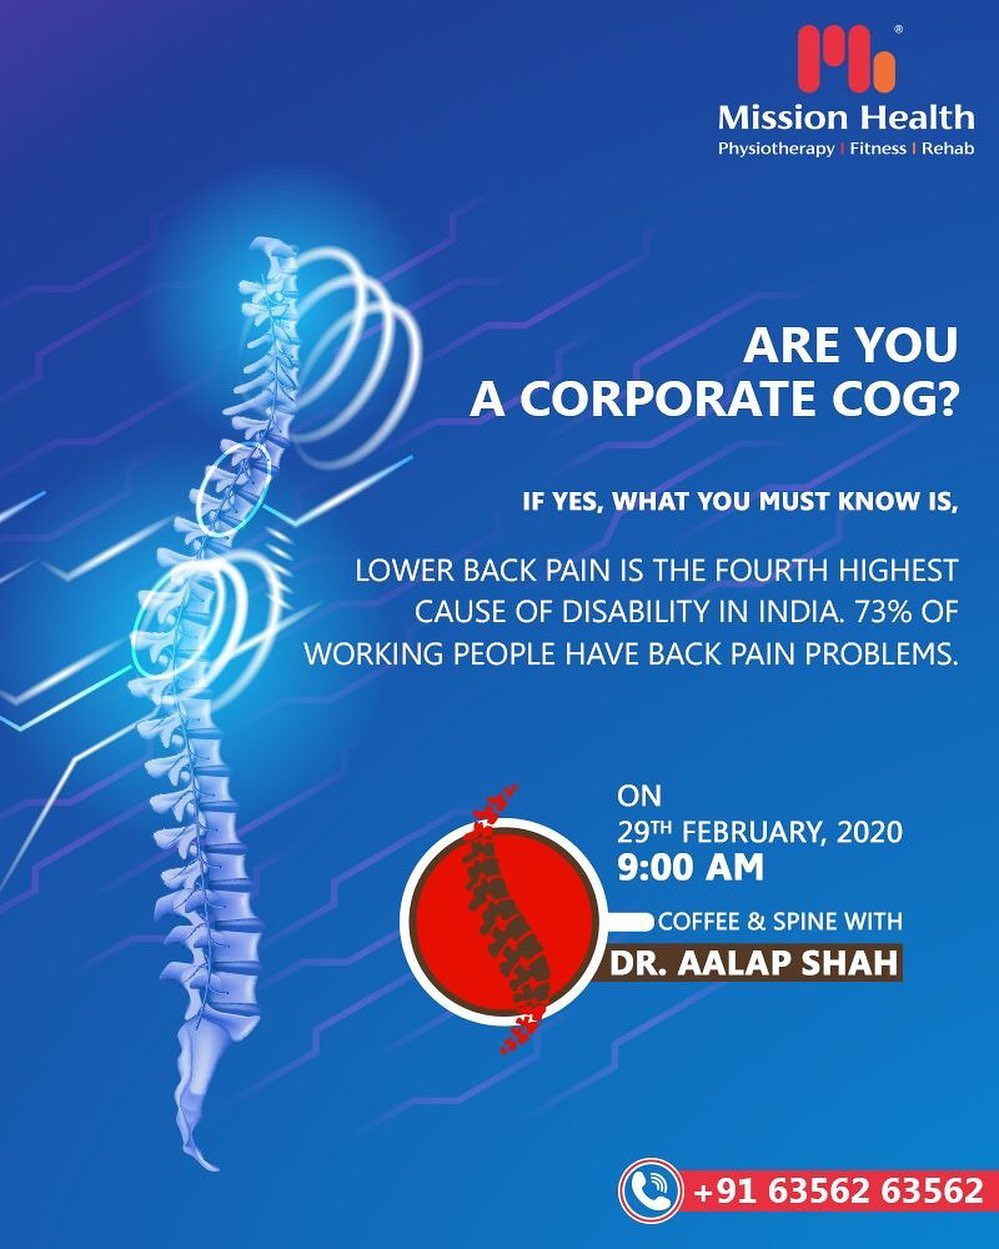 Lower Back Pain is the fourth highest cause of disability in India. 73% of working people have Back Pain problems.  A sedentary lifestyle combined with poor posture at work and while using gadgets contributes to the rise in such conditions.  Keep reading this space for more Spine Updates  Call: +916356263562  Visit: www.missionhealth.co.in  #CoffeeAndSpineWithDrAalapShah #DrAalapShah #SuperSpecialitySpineClinic #SpineClinic #BackPain #NeckPain #SlippedDisc #MissionHealth #MissionHealthIndia #AbilityClinic #MovementIsLife